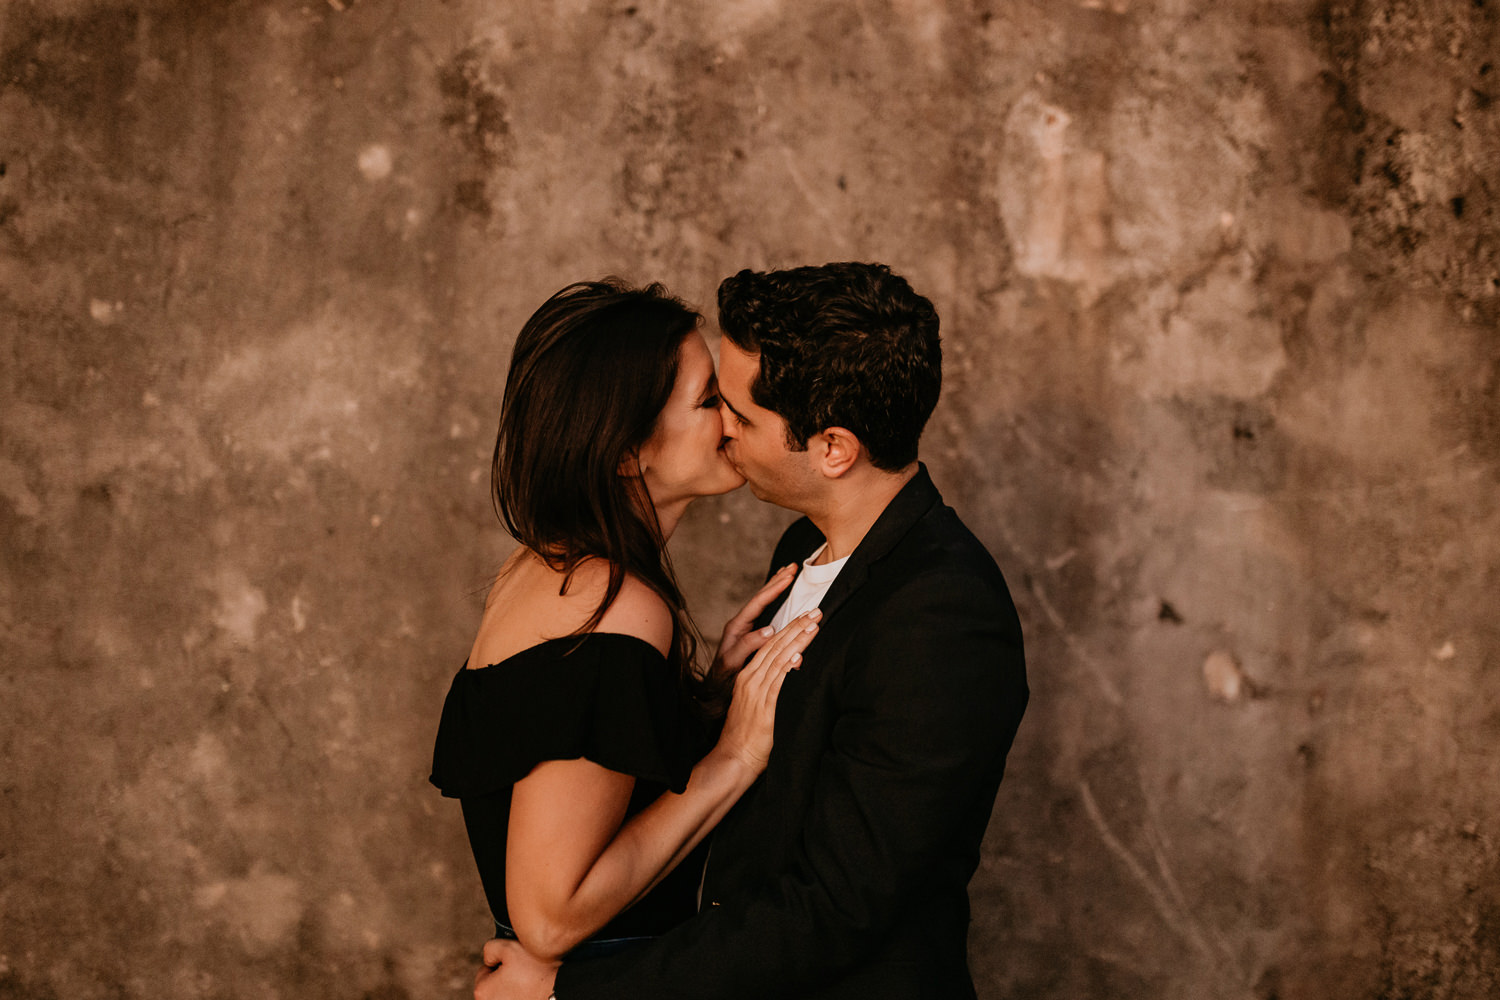 couple facing each other kissing her hands on his chest in front of stone wall